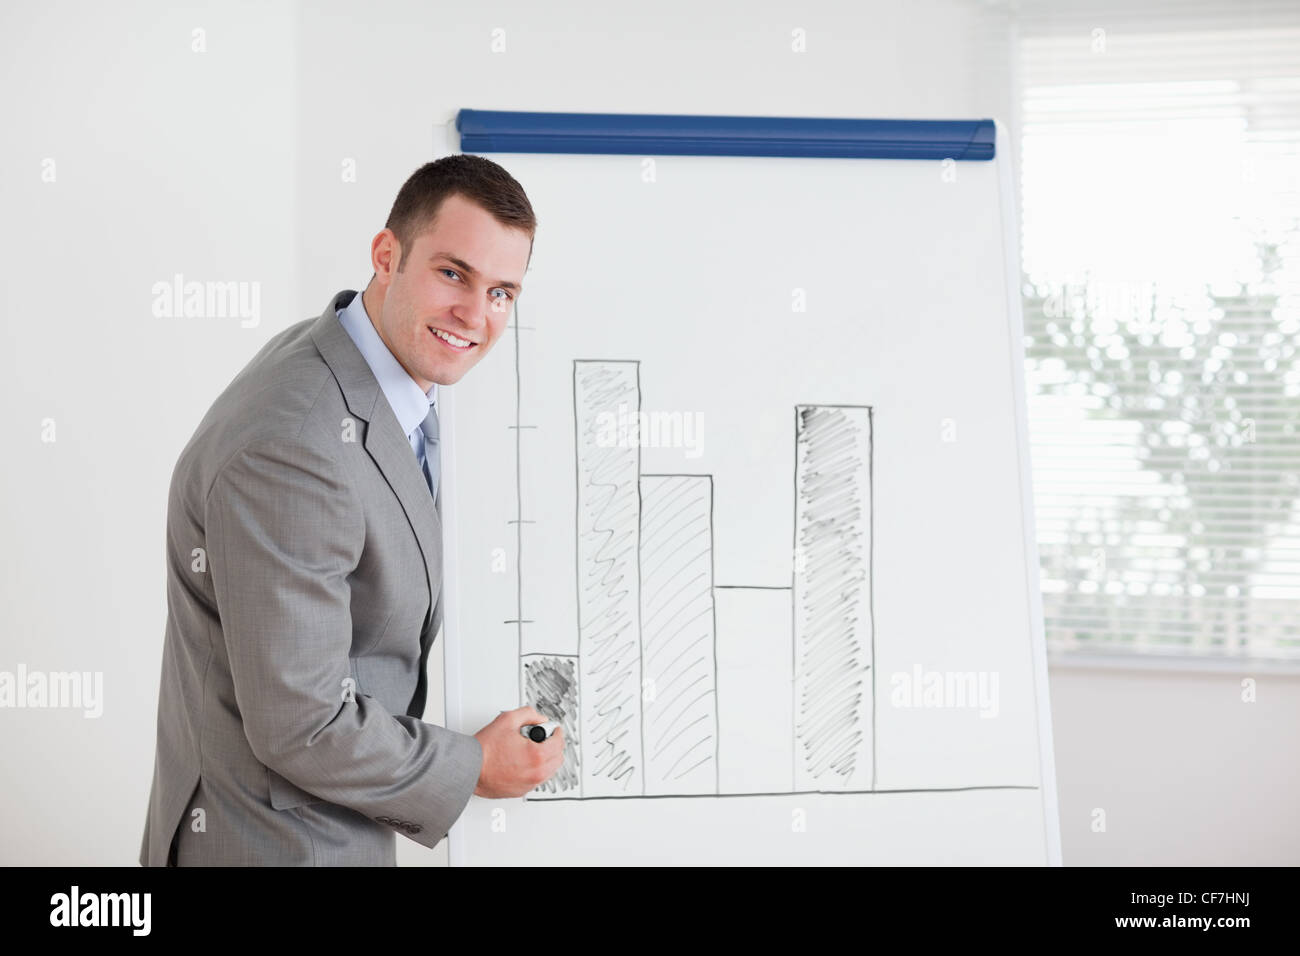 Smiling businessman editing column graph - Stock Image